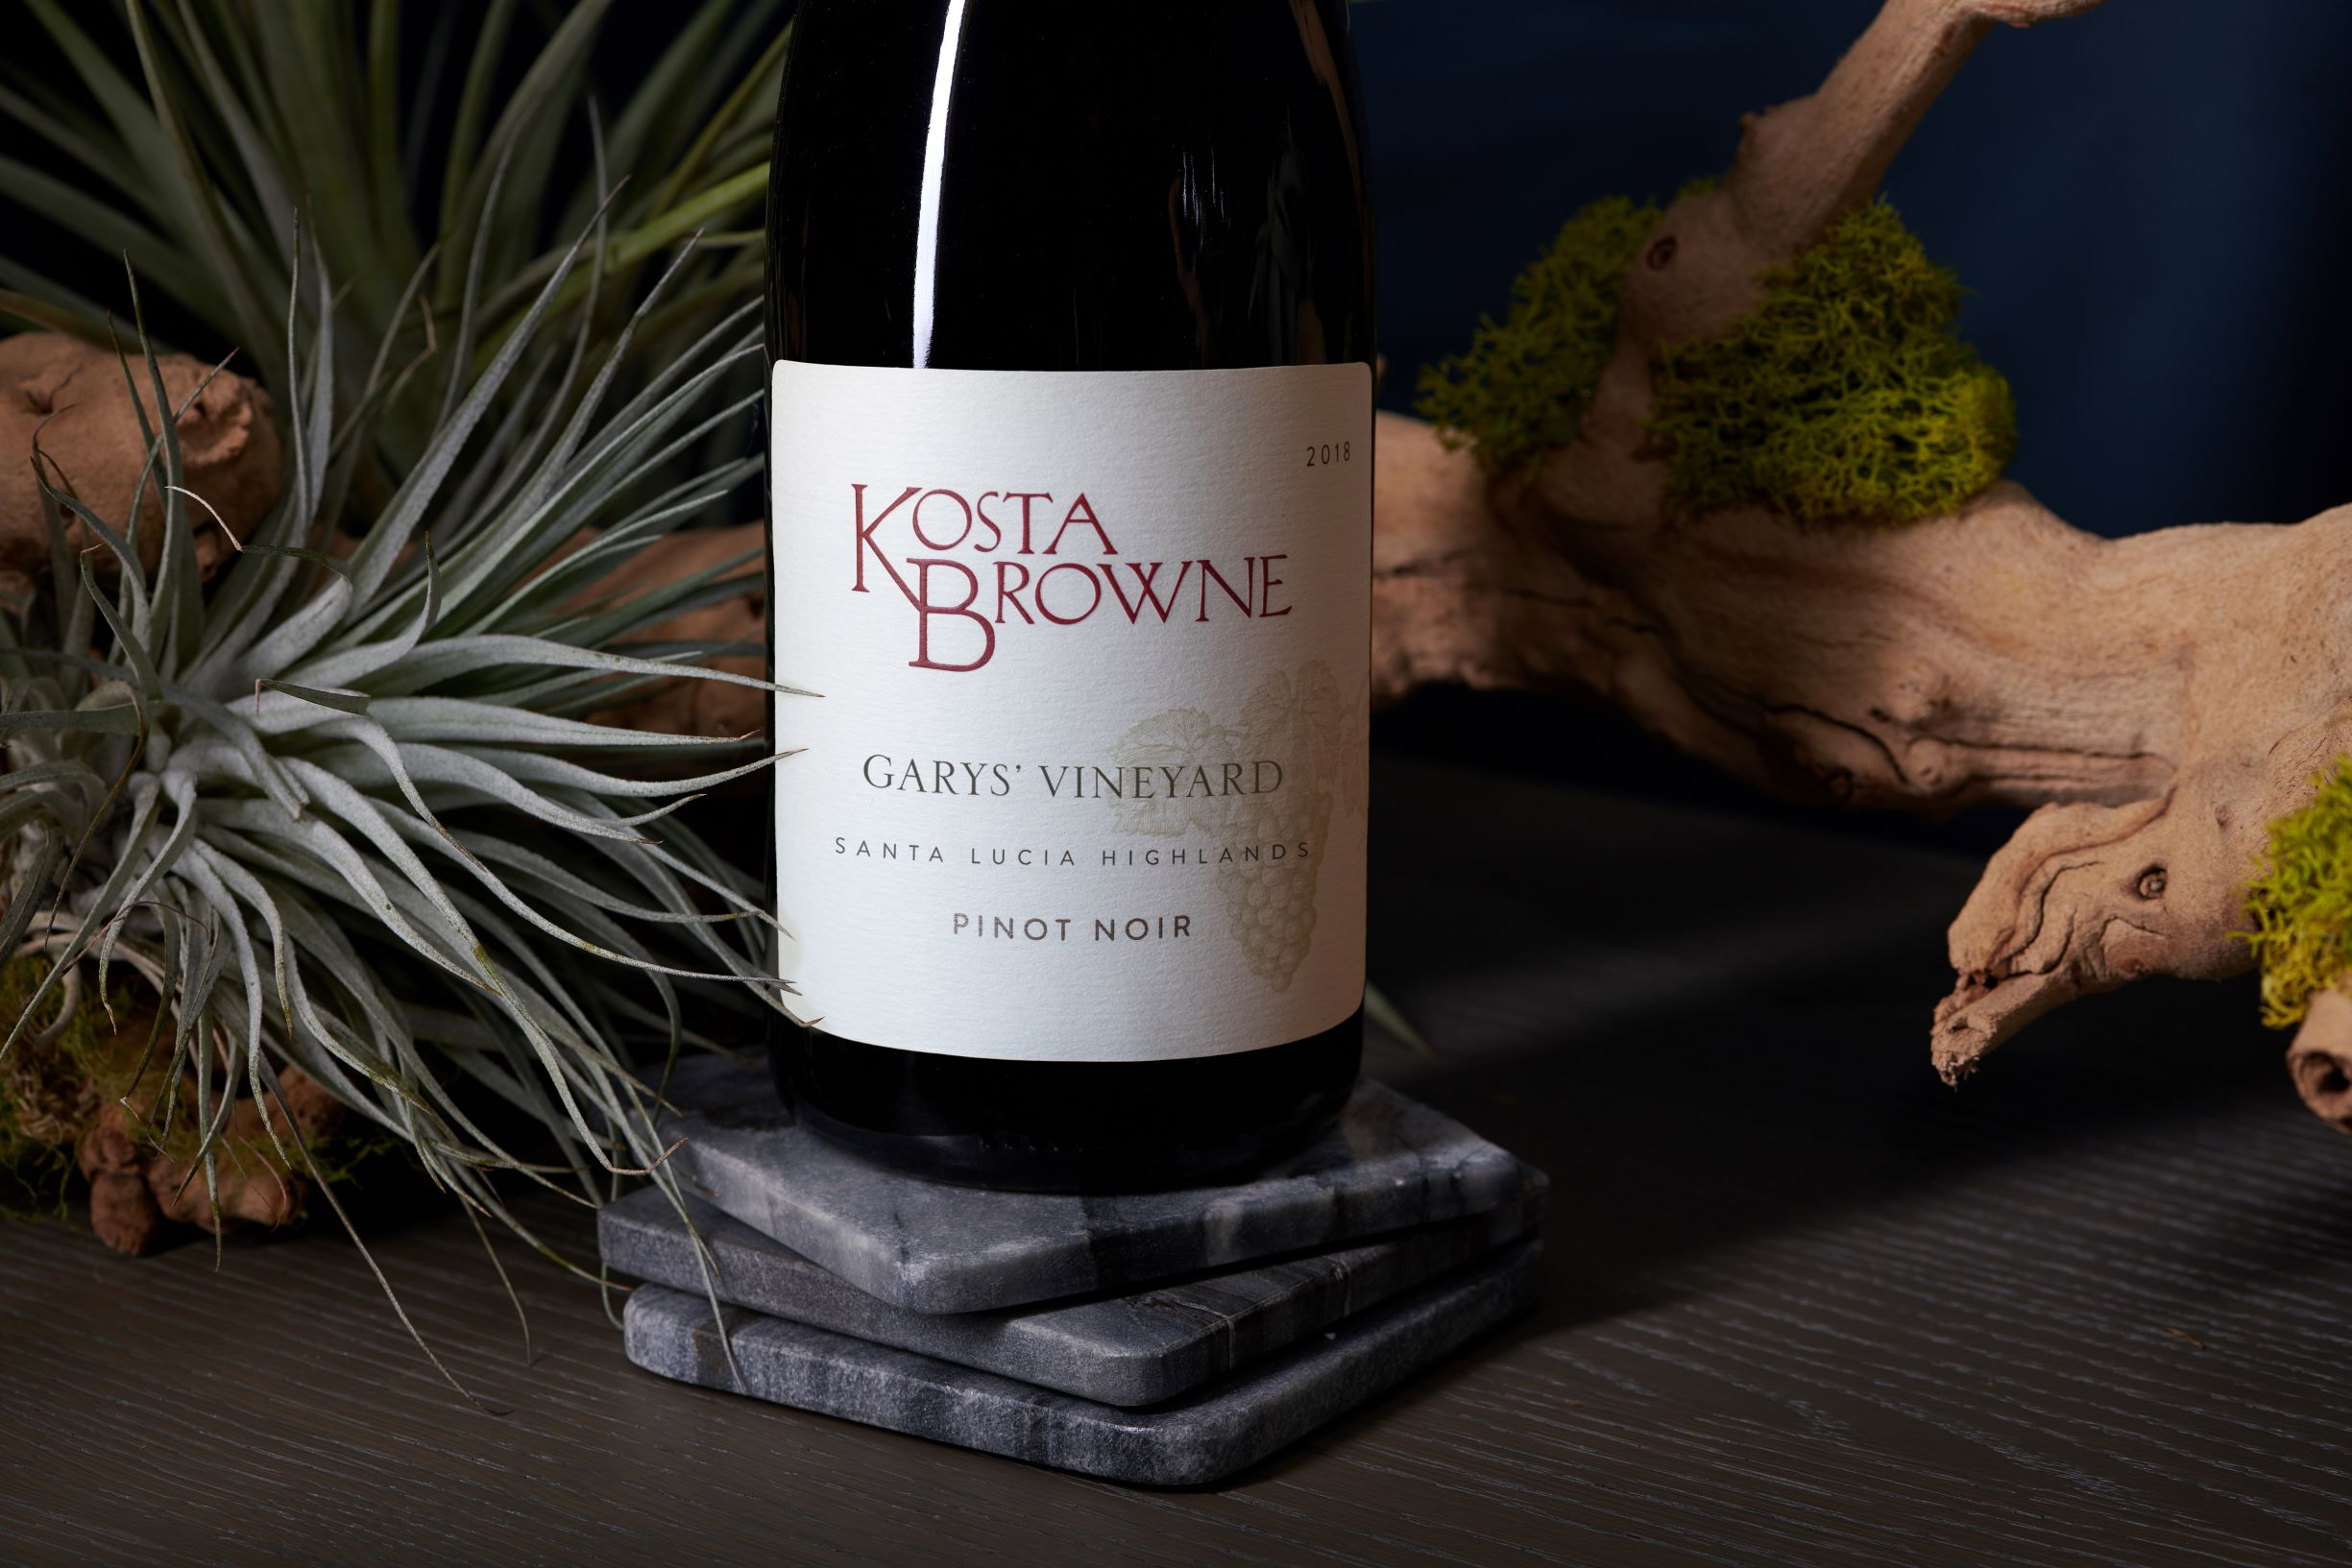 2018 Garys' Vineyard Santa Lucia Highlands, Pinot Noir - Kosta Browne Winery